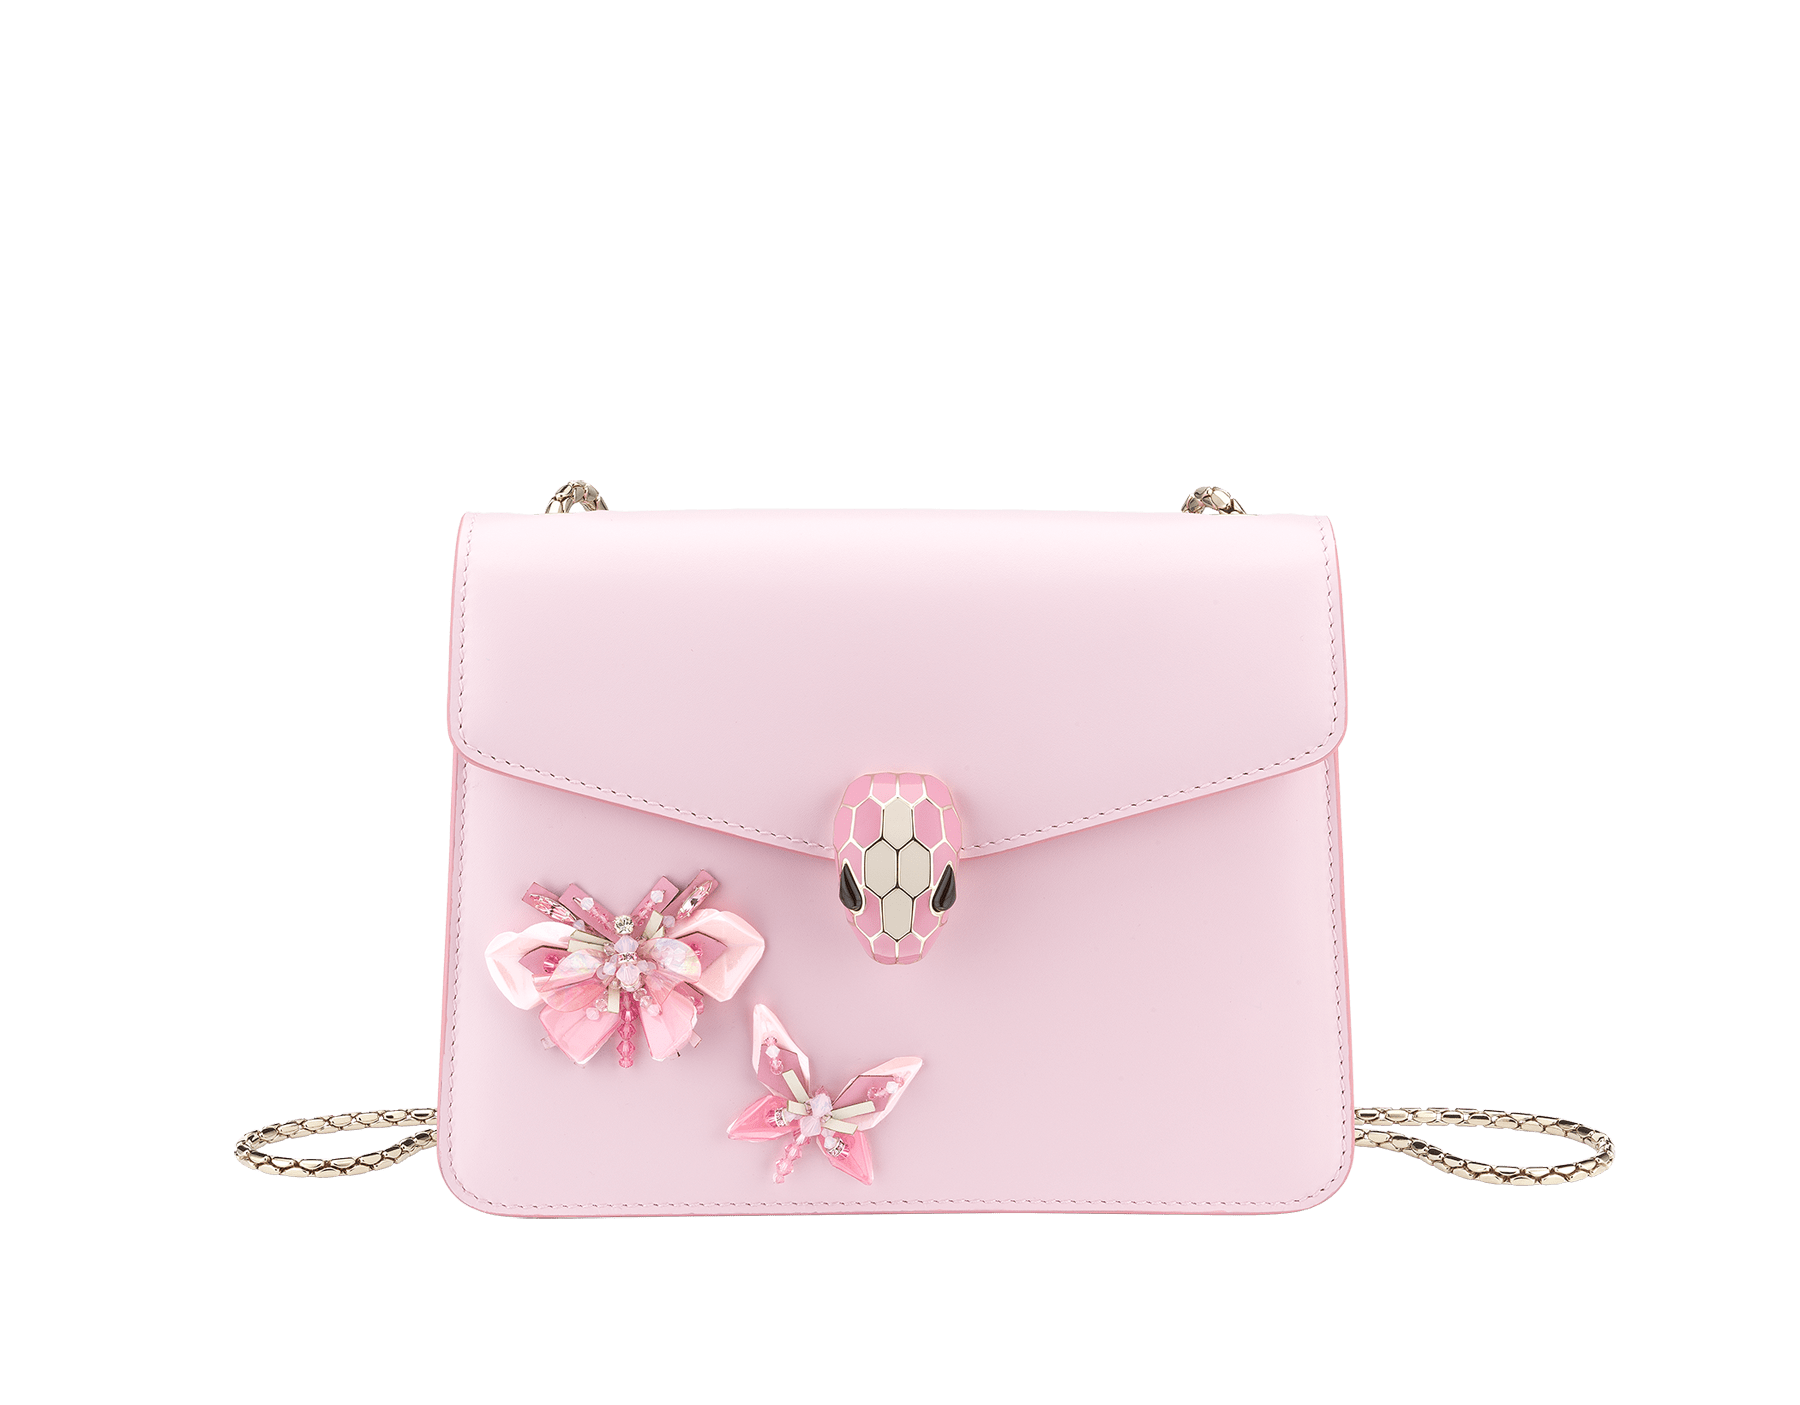 """Serpenti Forever"" crossbody bag in rosa di francia calf leather with two rosa di francia butterflies embroidered. Iconic snakehead closure in light gold plated brass enriched with rosa di francia and white agate enamel and black onyx eyes. 289239 image 1"